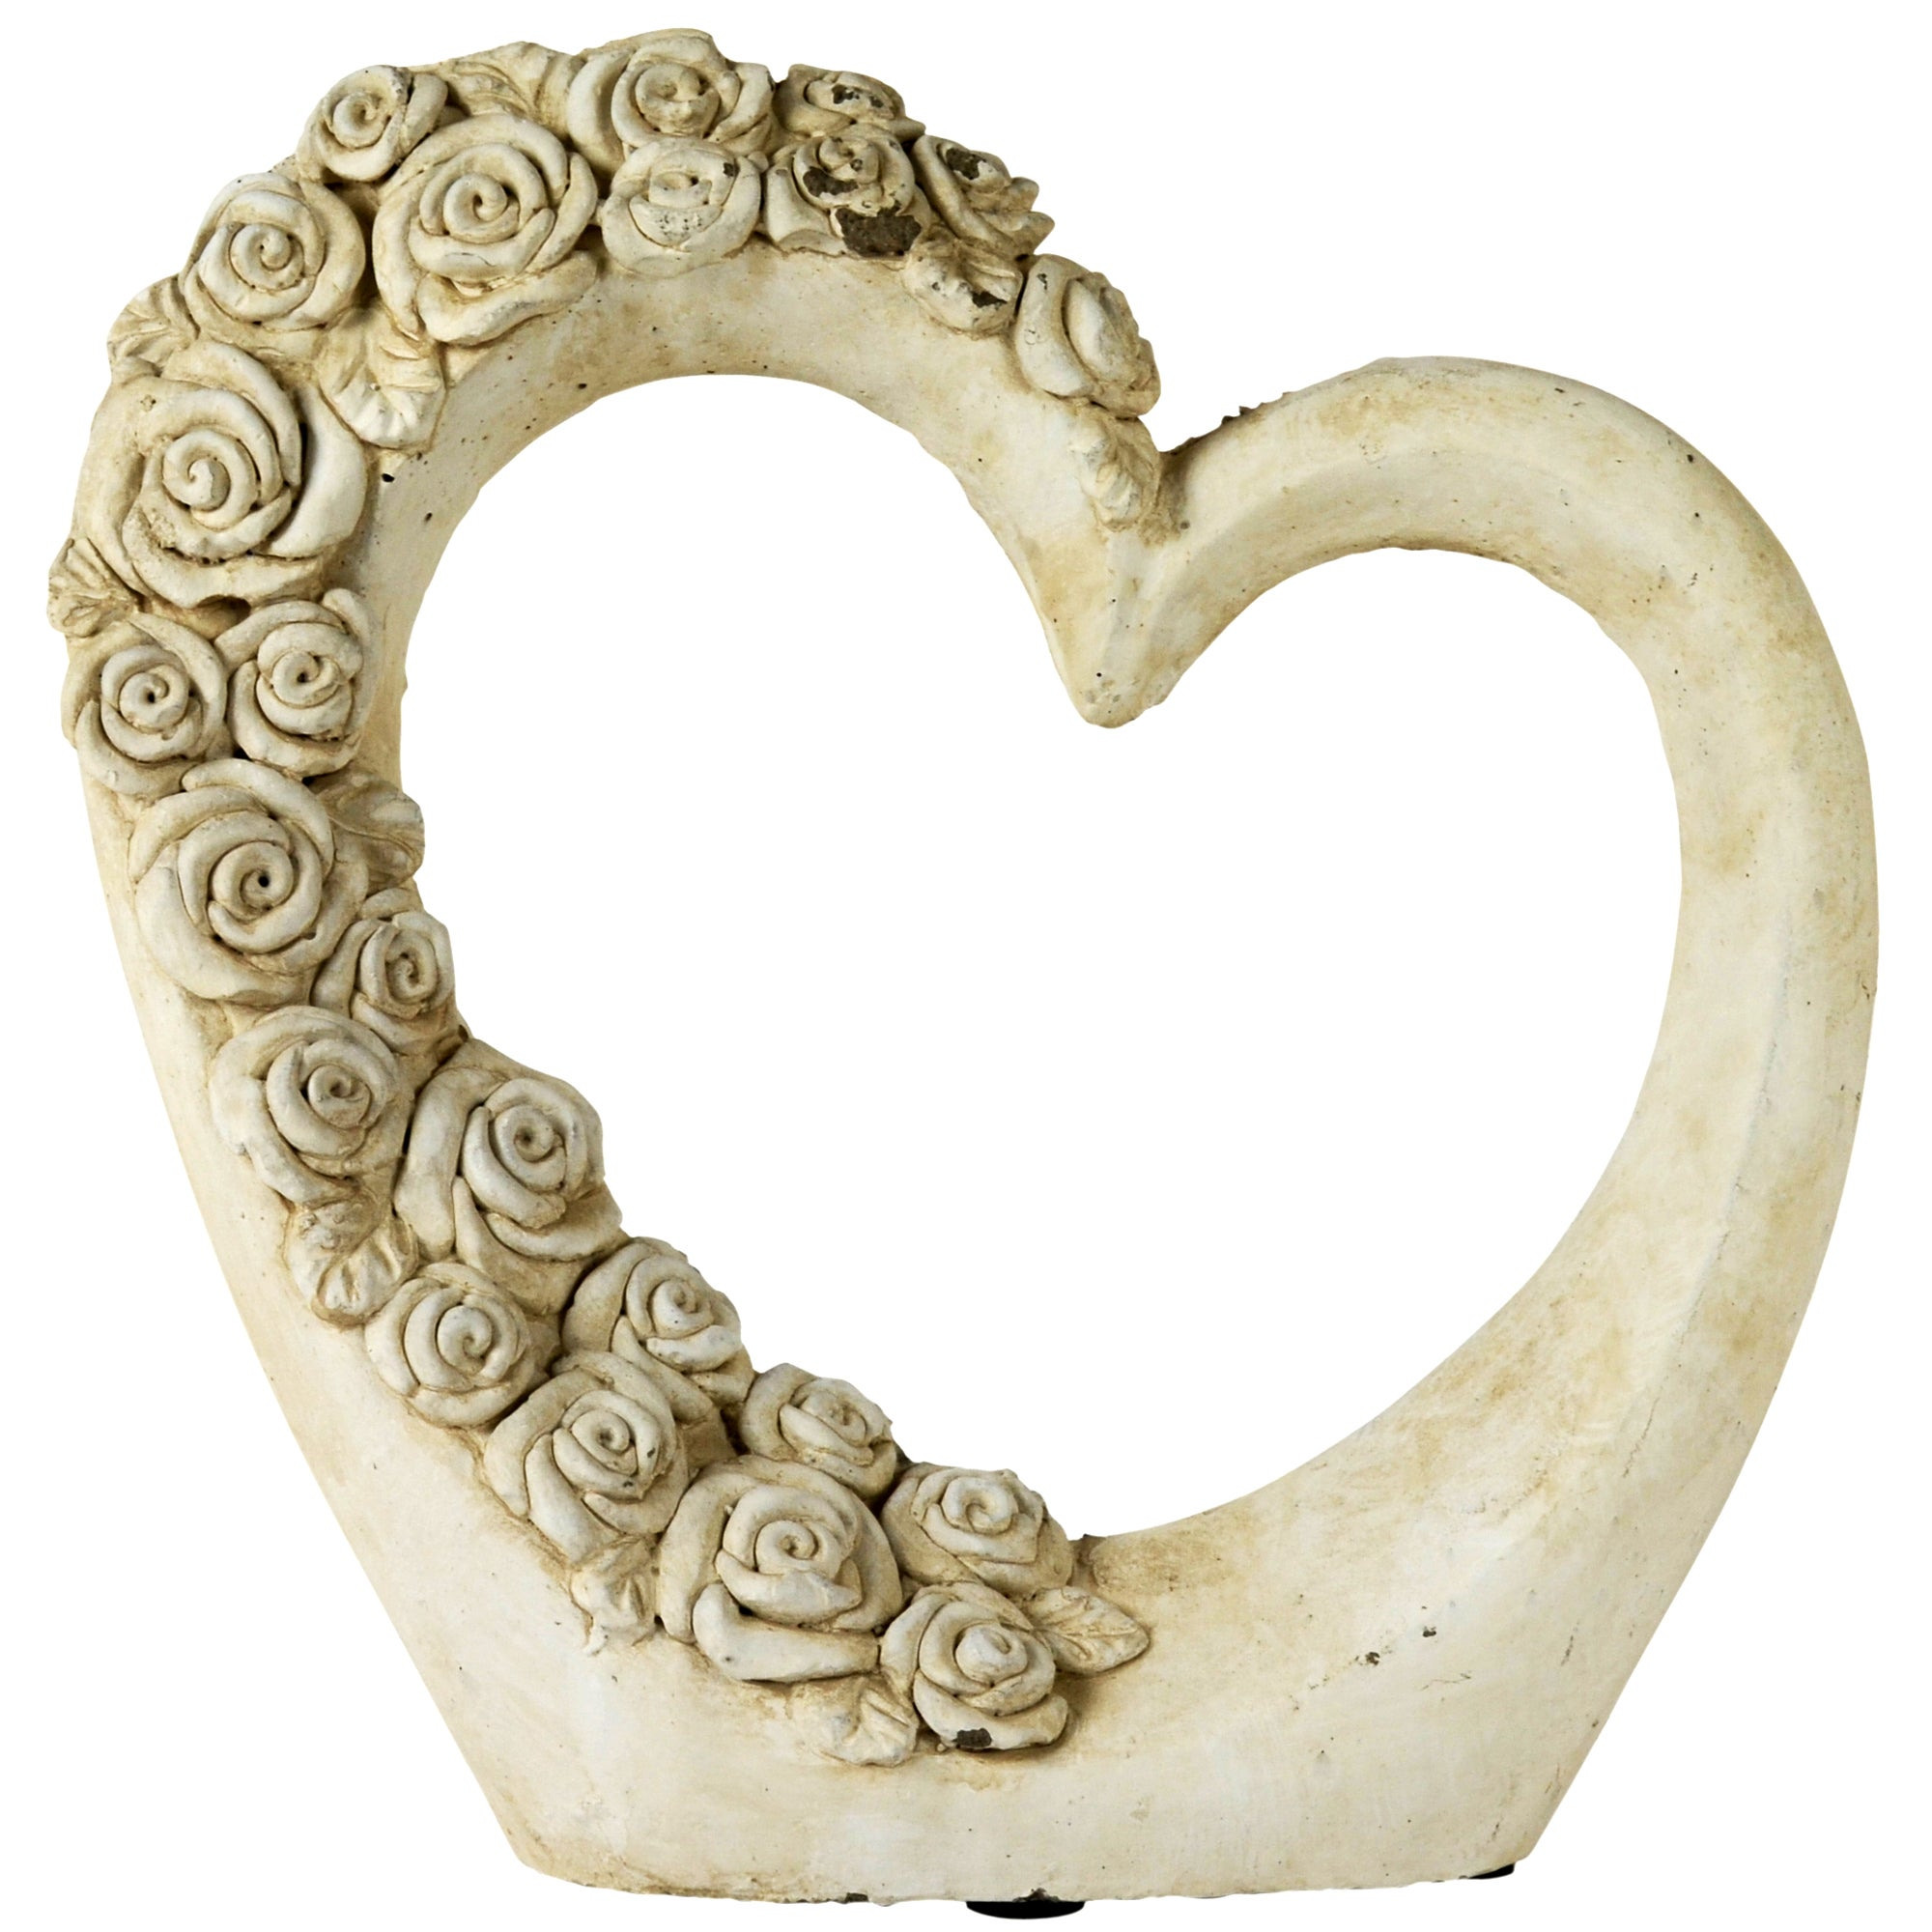 Room in Bloom Collection Heart Sculpture with Roses